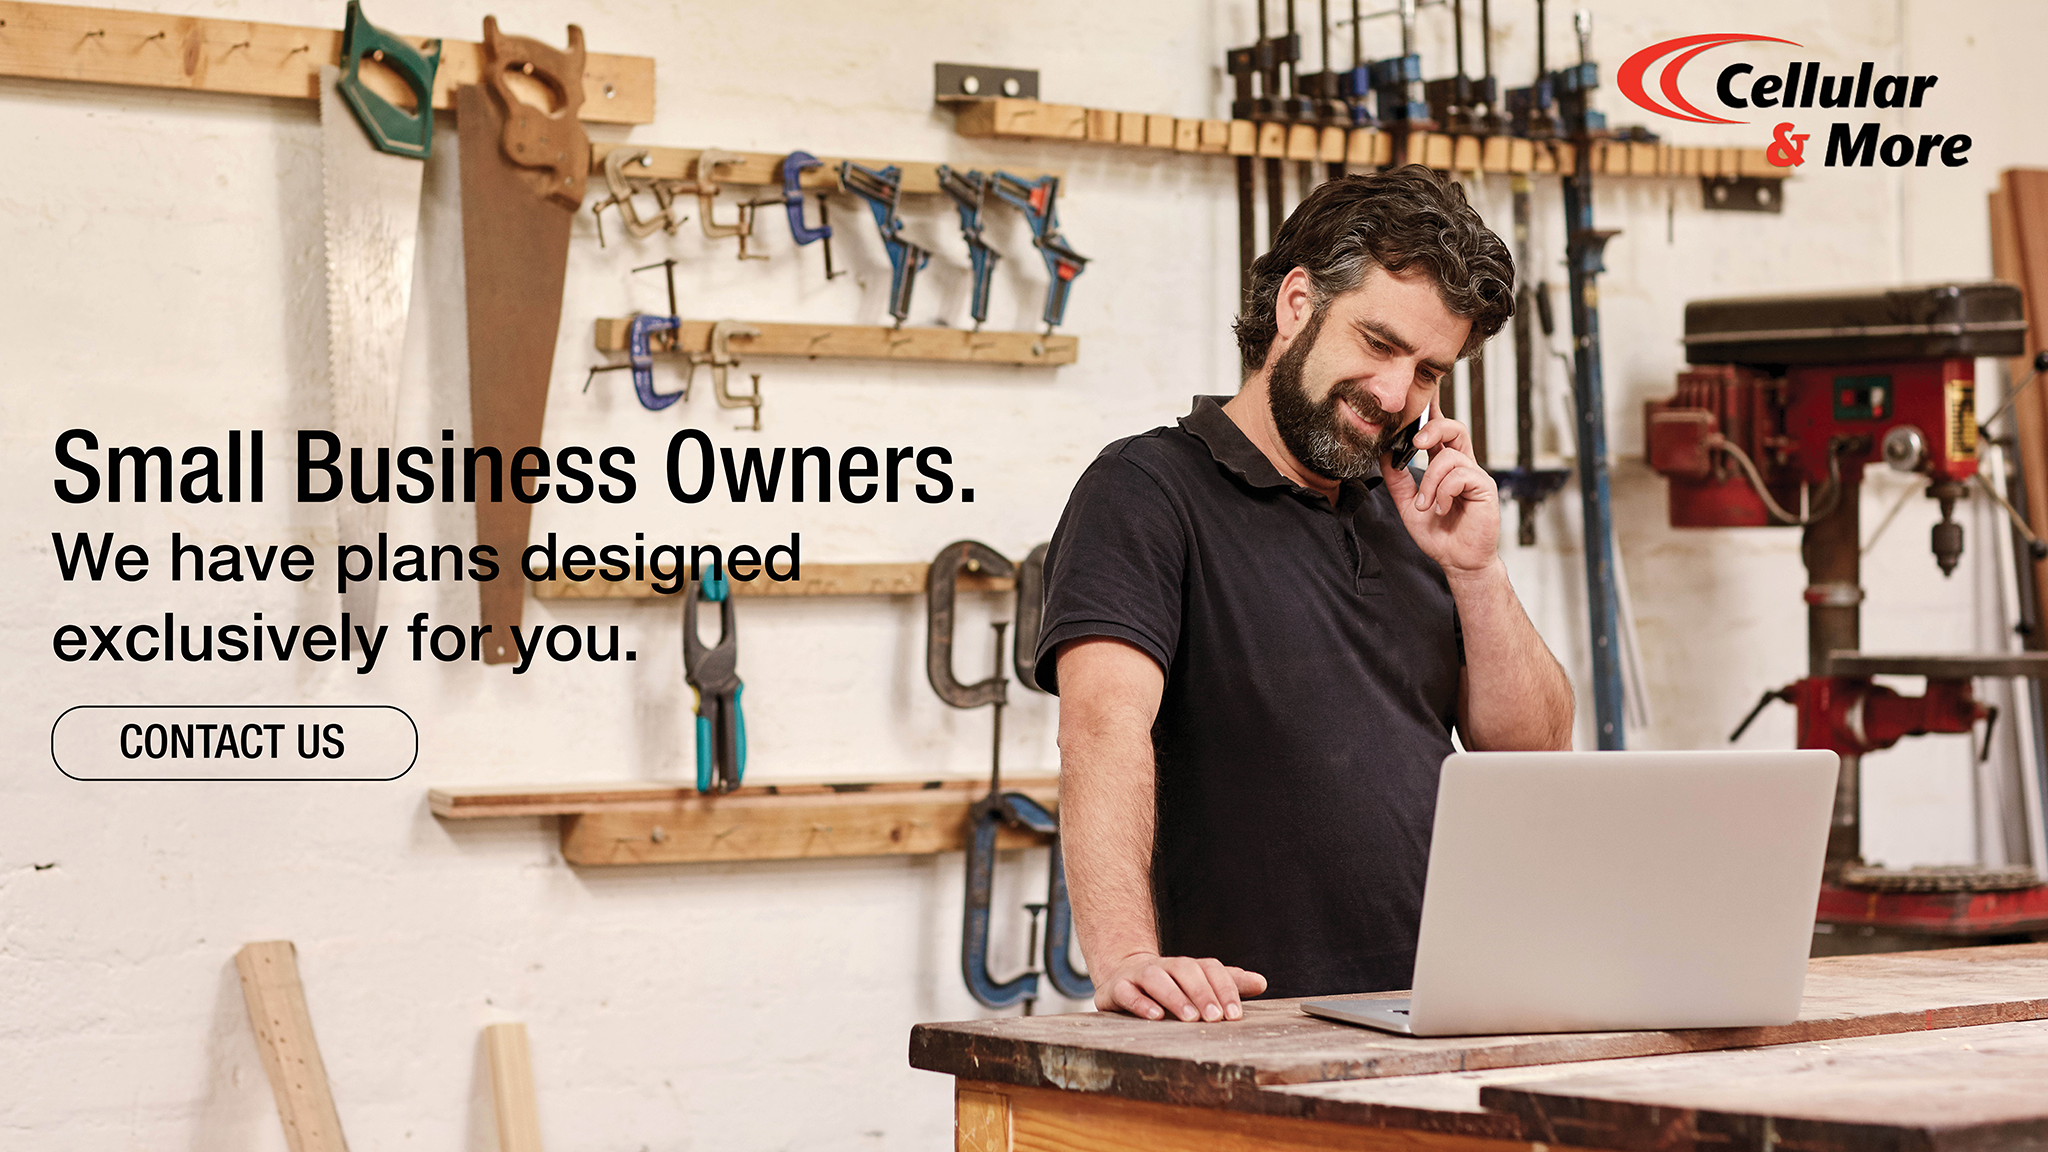 We have exclusive discounts for small business owners! Contact us today to learn more.